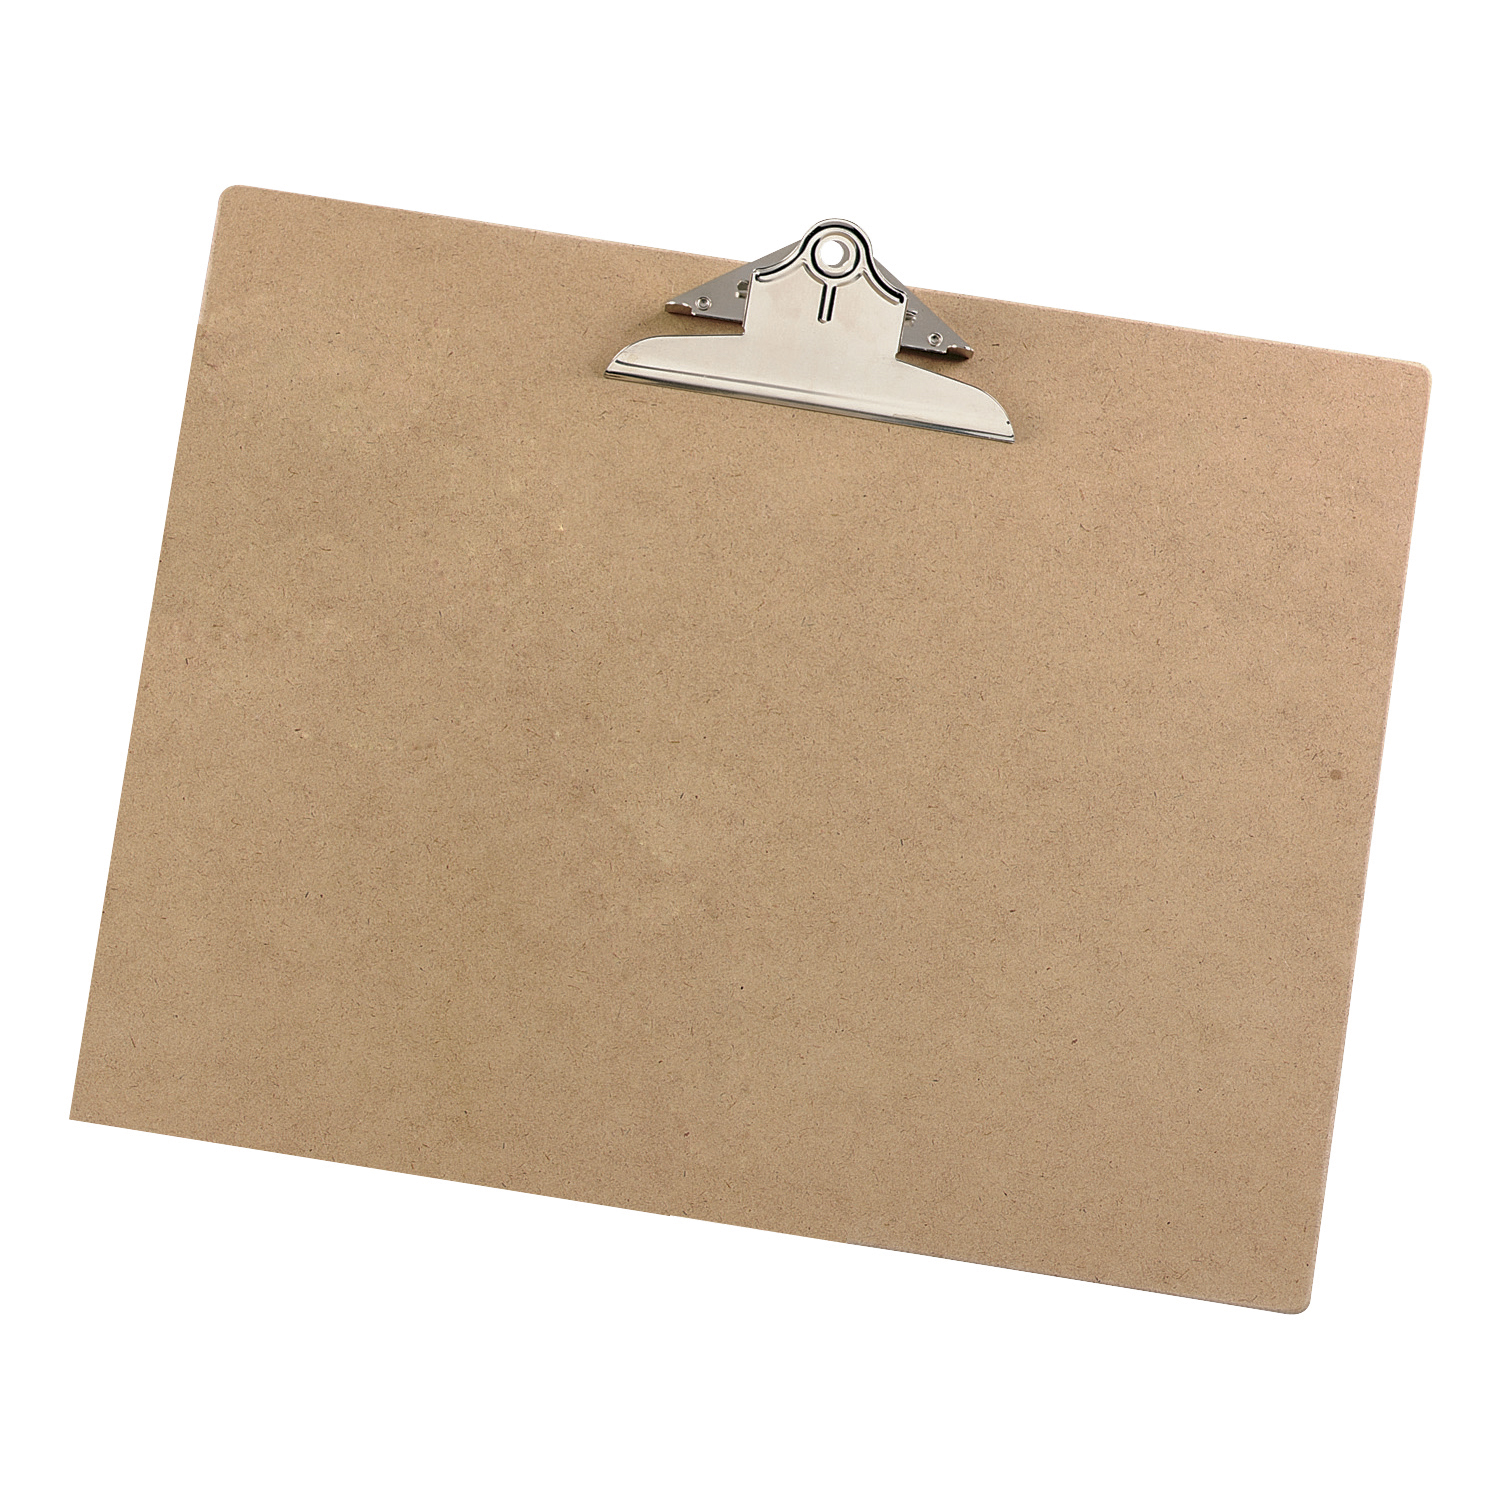 5 Star Office Clipboard Rigid Hardboard A3